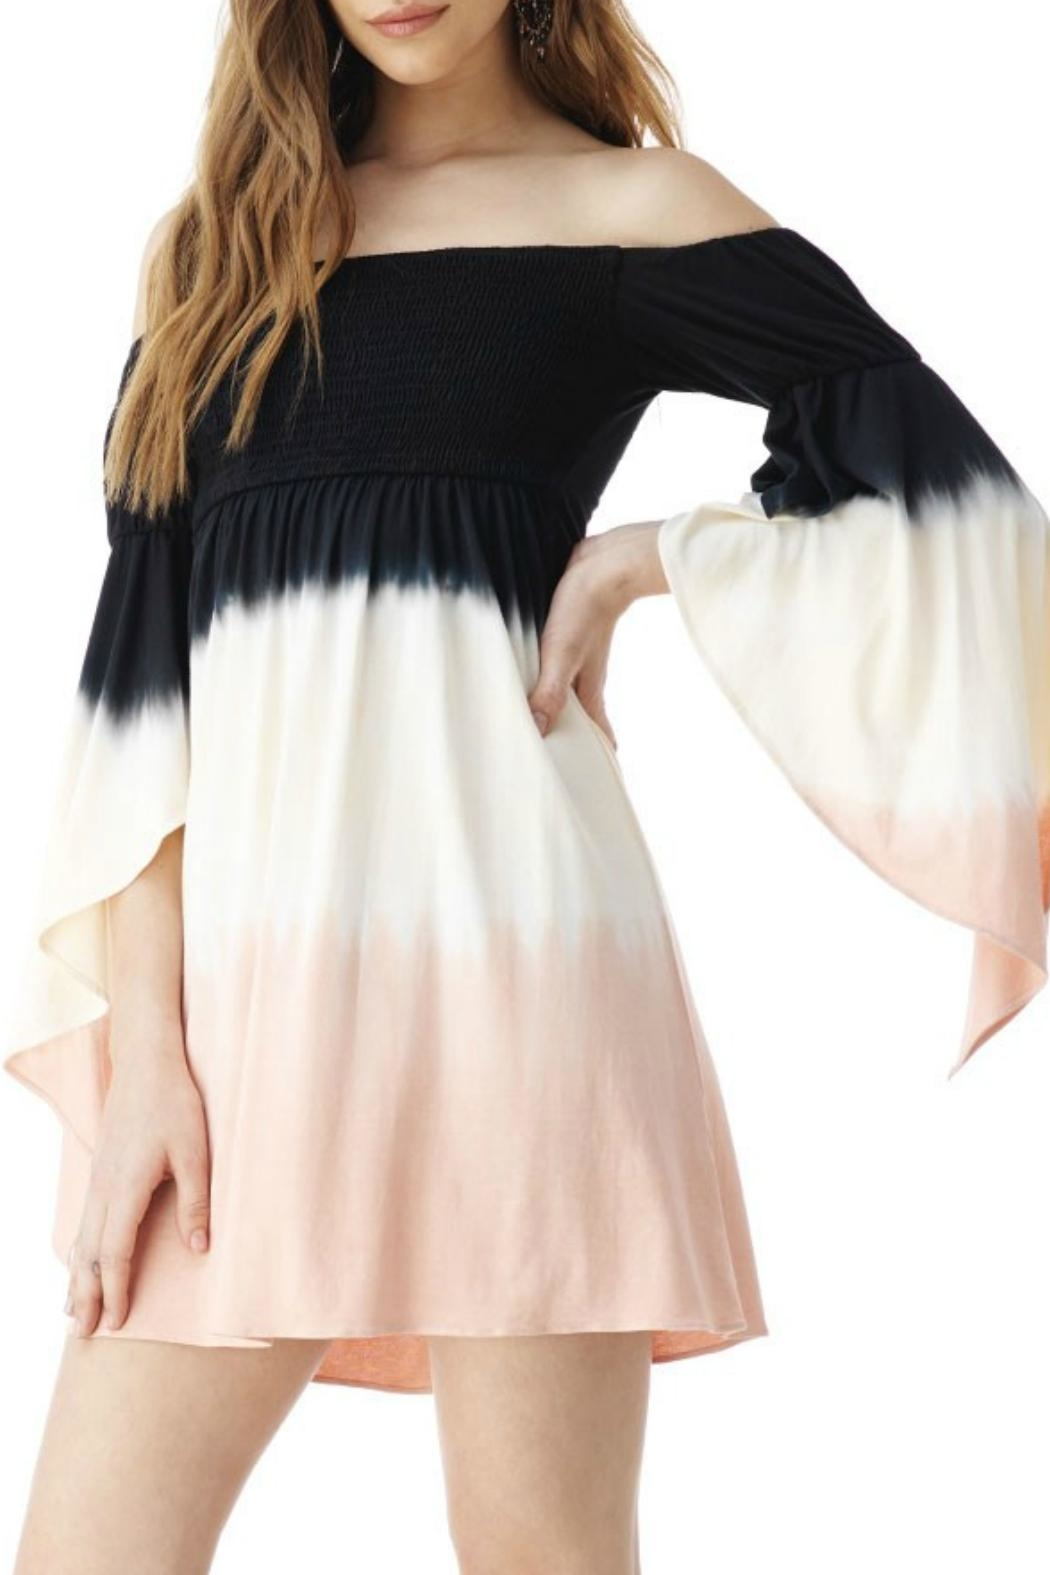 Sky Ombre Off-The-Shoulder Dress - Main Image